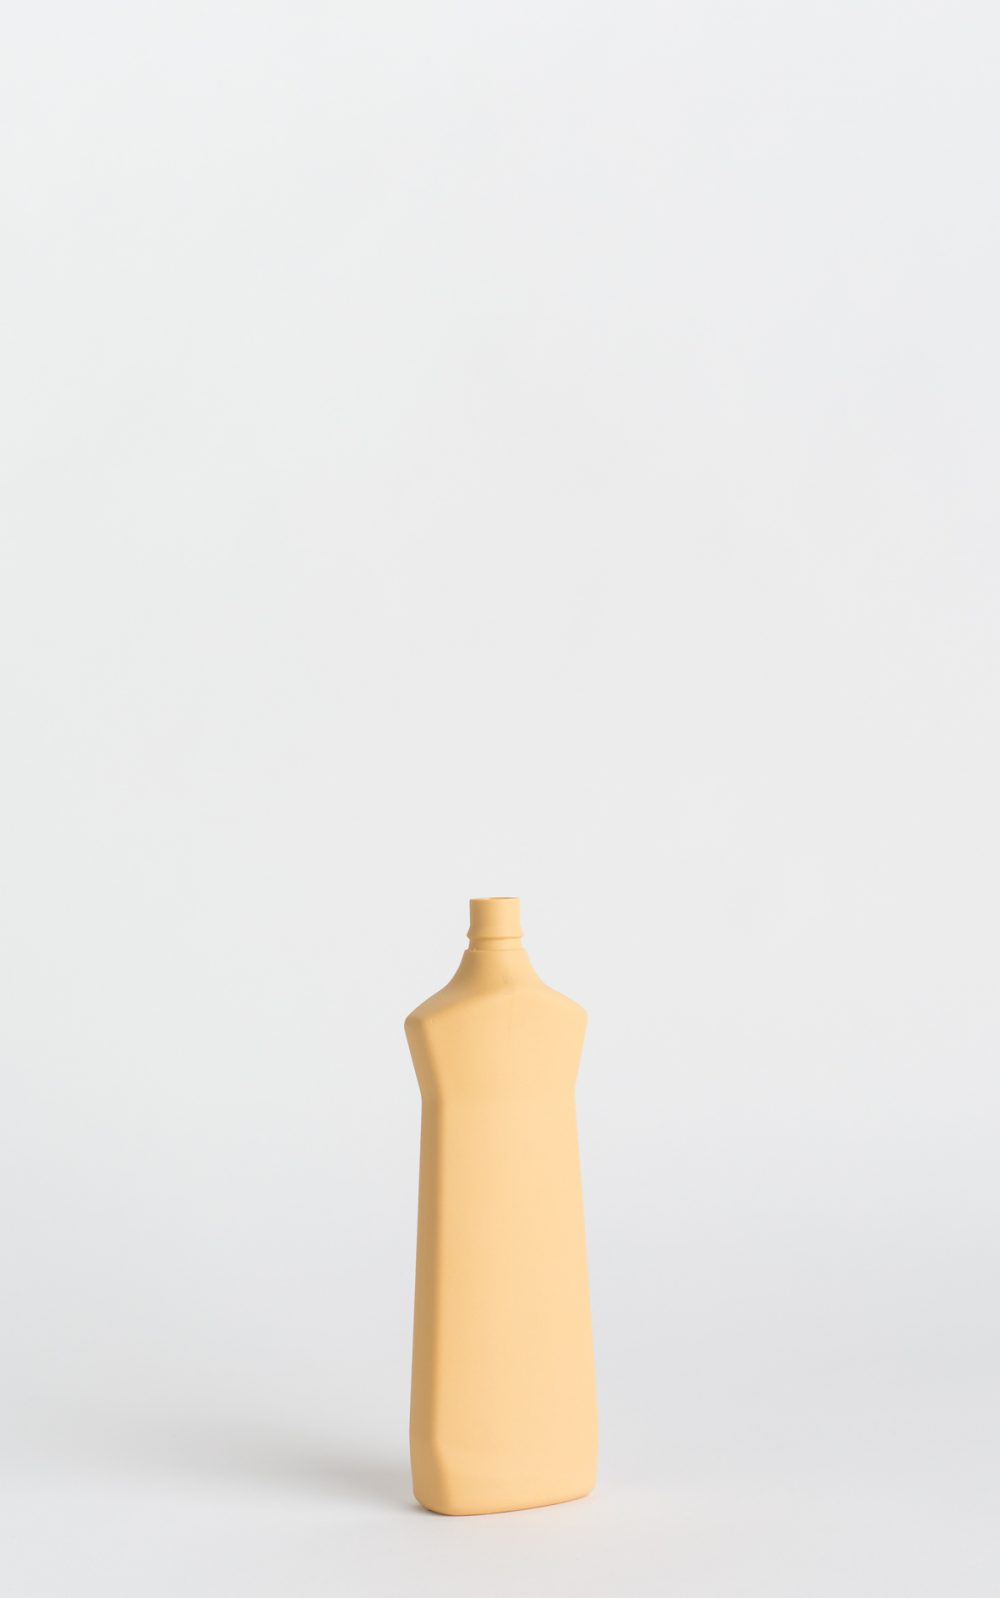 bottle vase #1 warm yellow